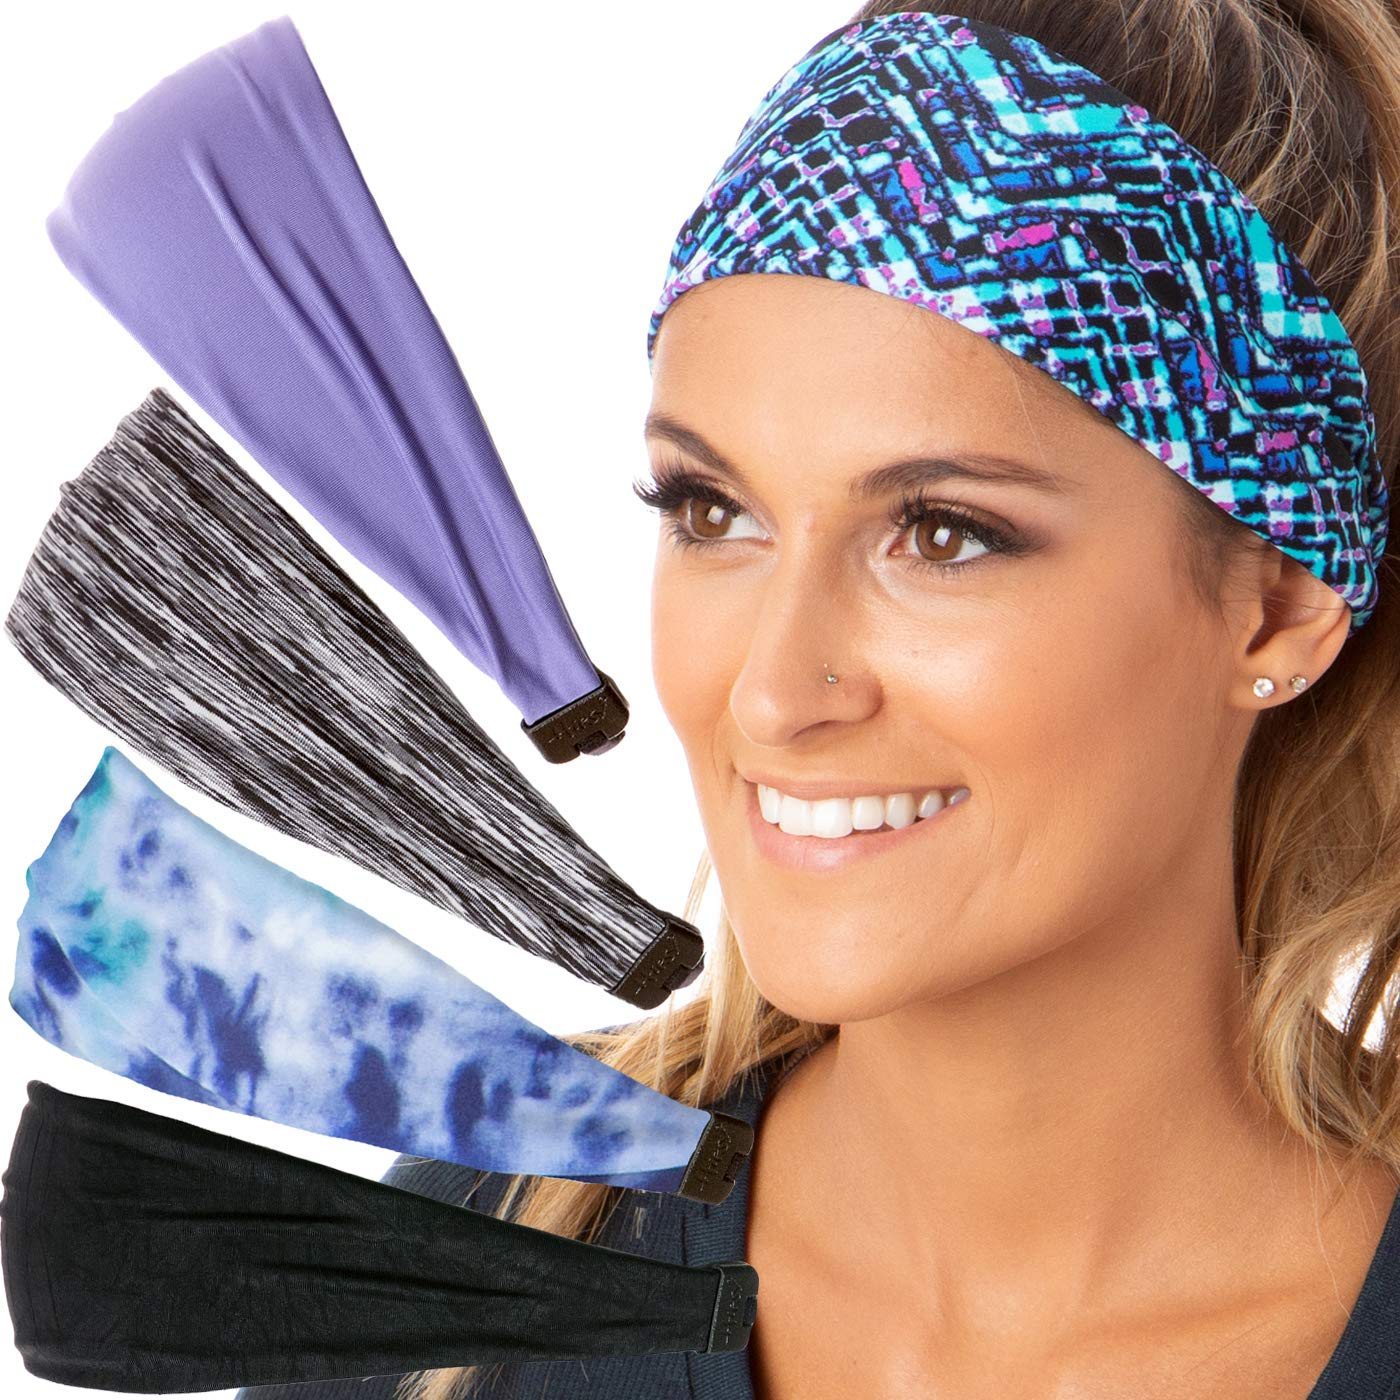 Hipsy Adjustable & Stretchy Xflex Band Wide Sports Headbands for Women Girls & Teens (5pk Black/Mosiac/Violet/Grey/Blue)